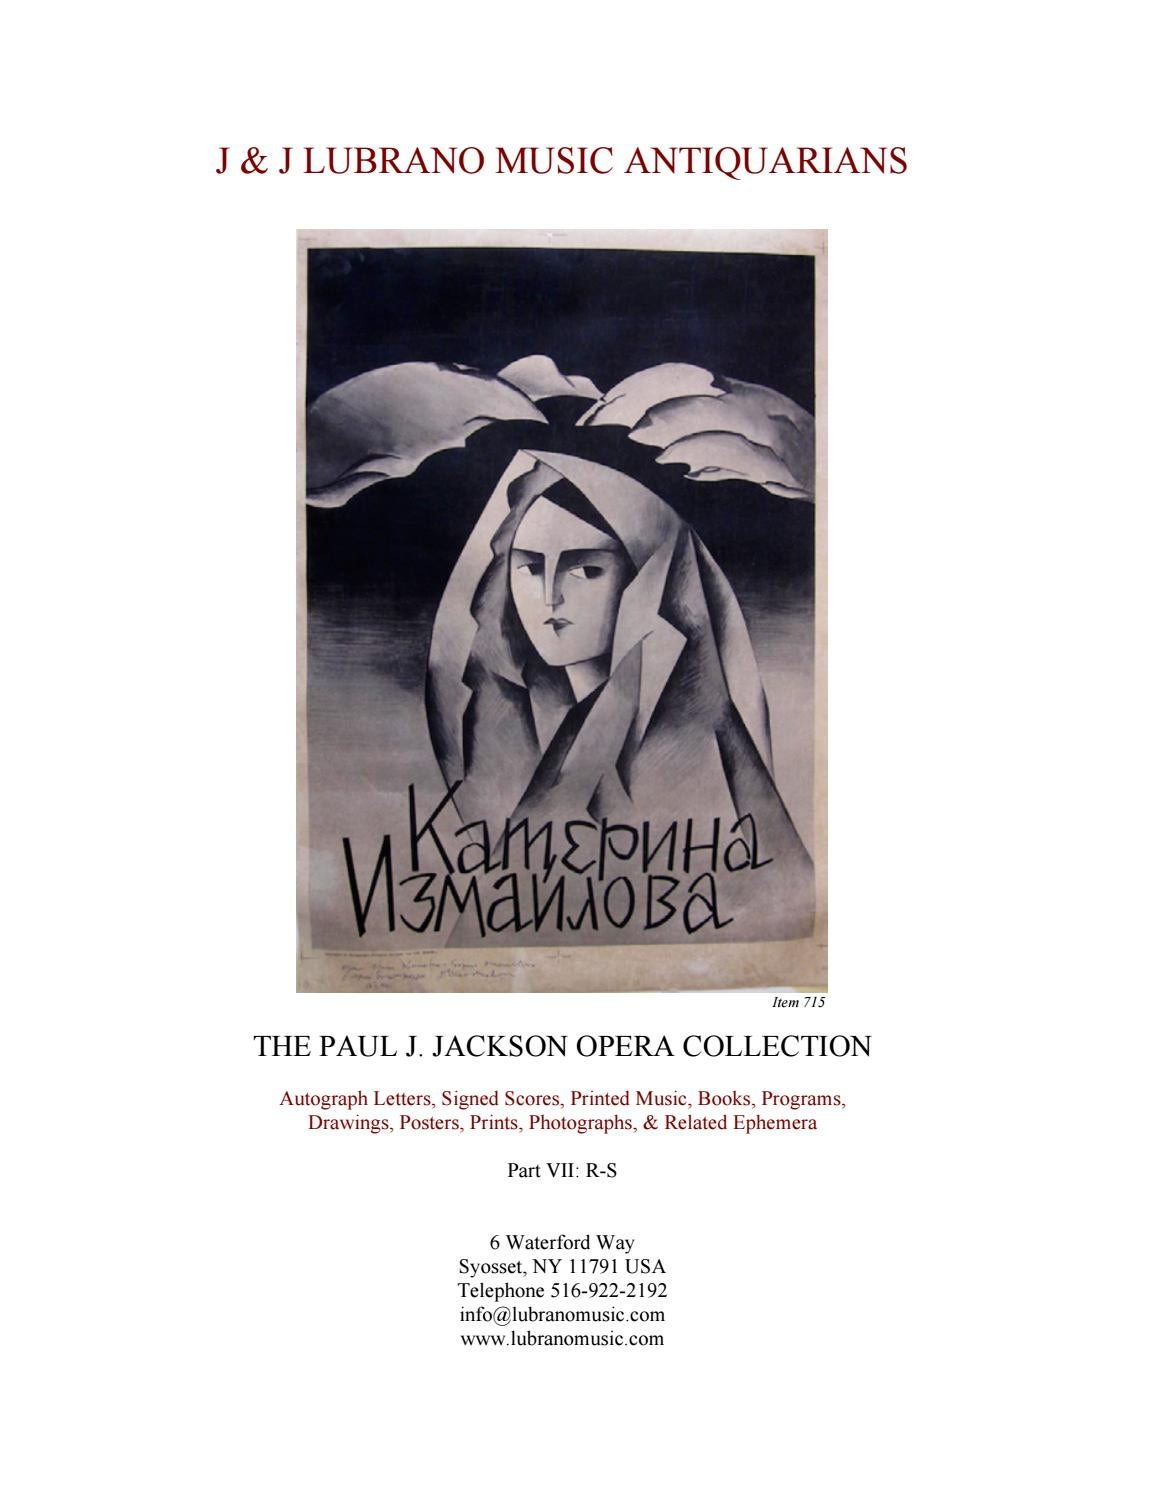 The Paul J. Jackson Opera Collection Part VII: R-S by J & J Lubrano ...